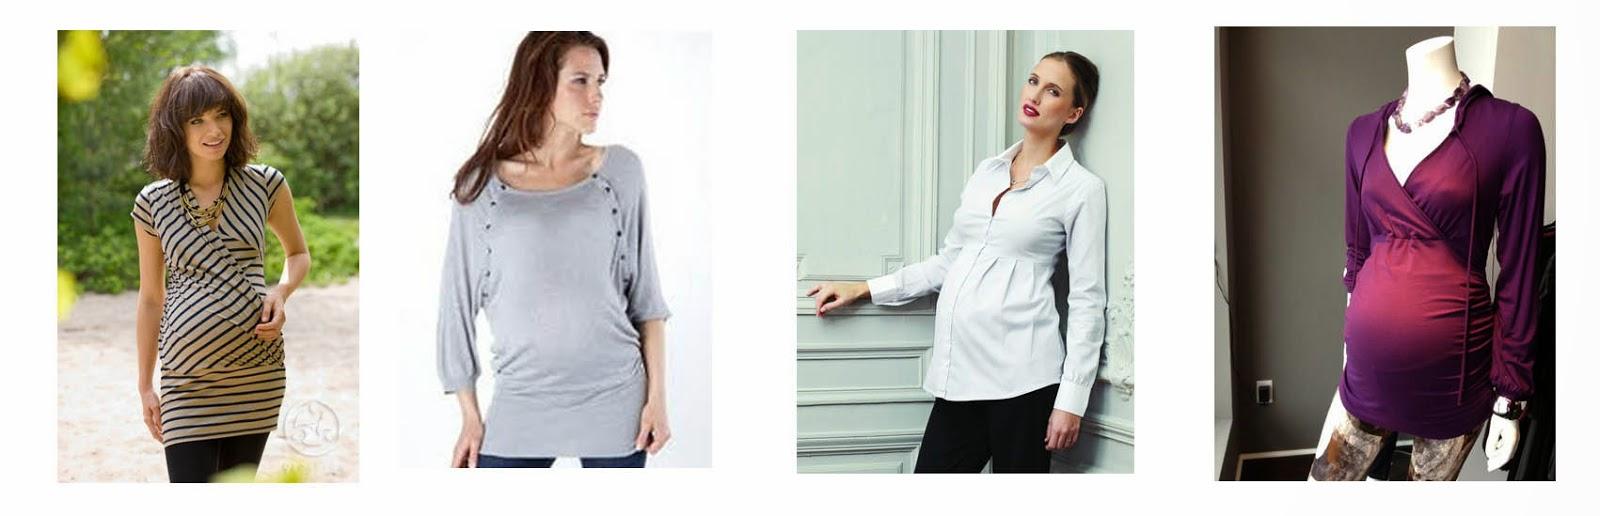 Enjoy free shipping over $ in Canada on flattering tops for pregnancy & beyond from Seraphine, Ripe, Mothers en Vogue, Queen Mum, Boob Design, Isabella Oliver & more.